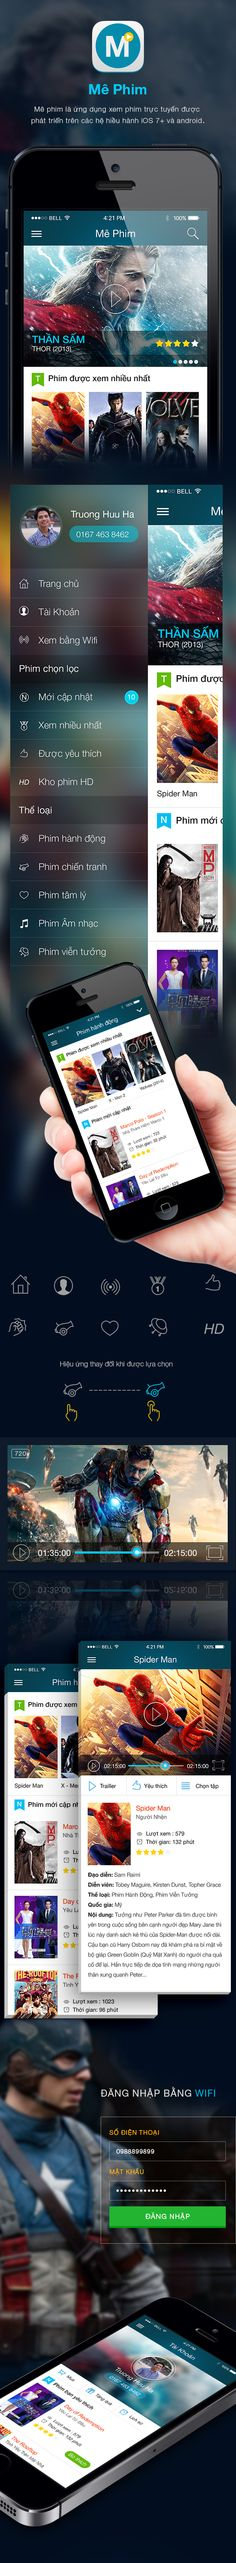 MePhim - Film App on Behance